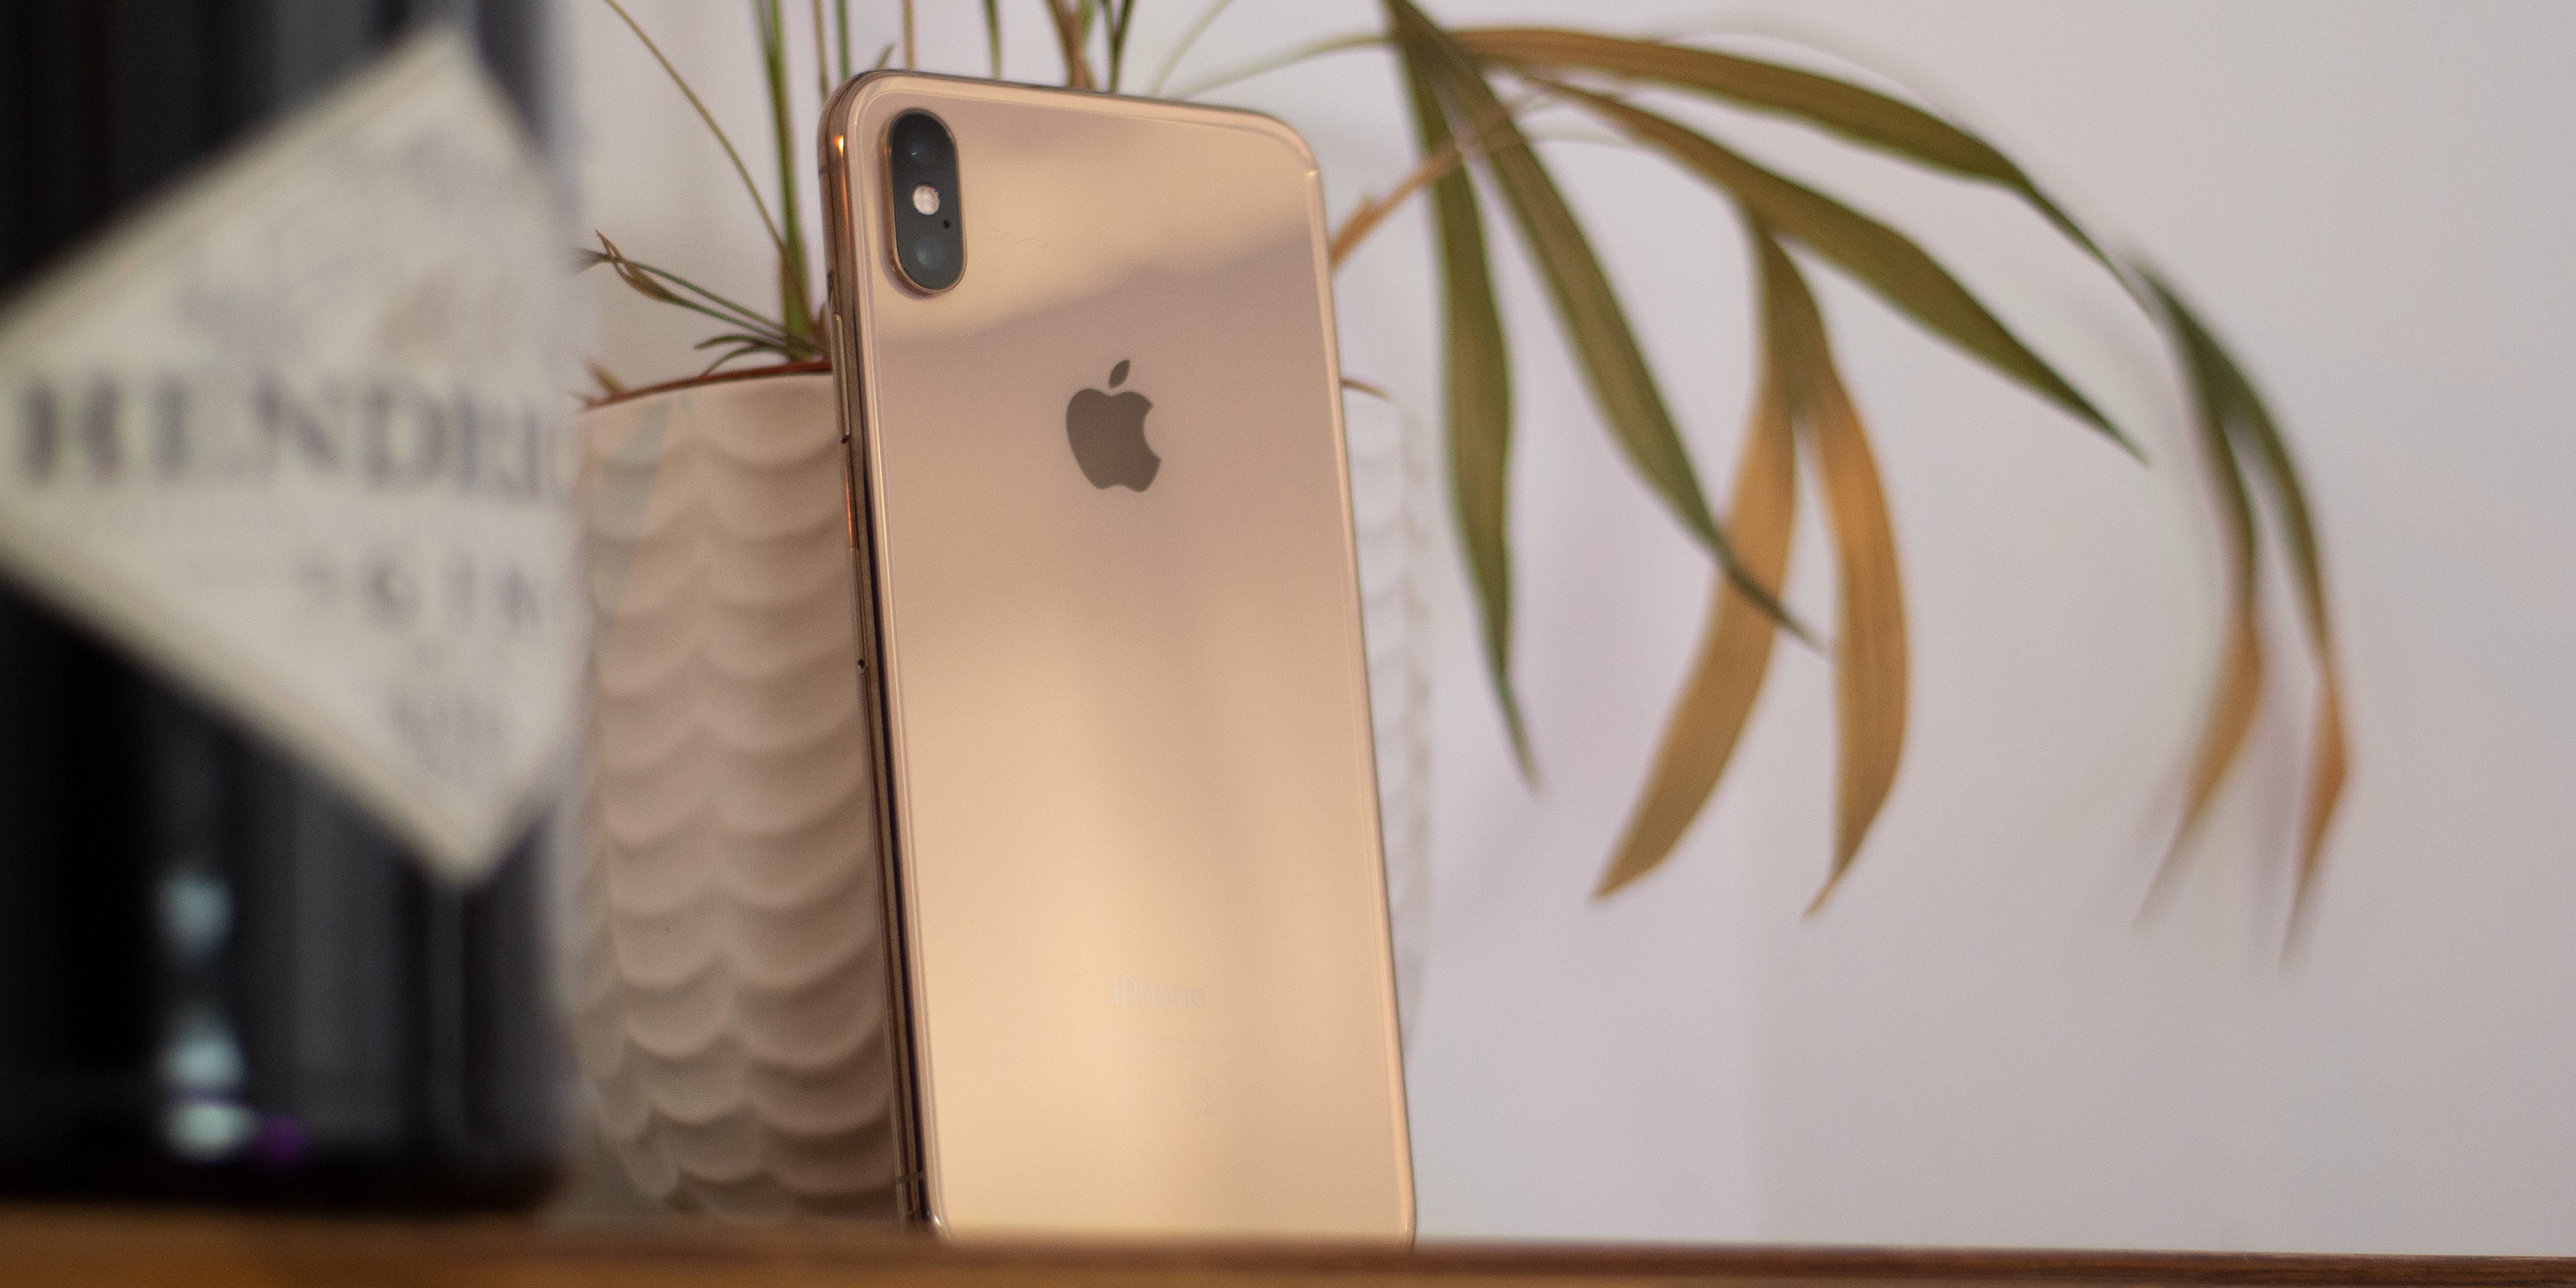 Review Thoughts on iPhone XS Max from an Android fan